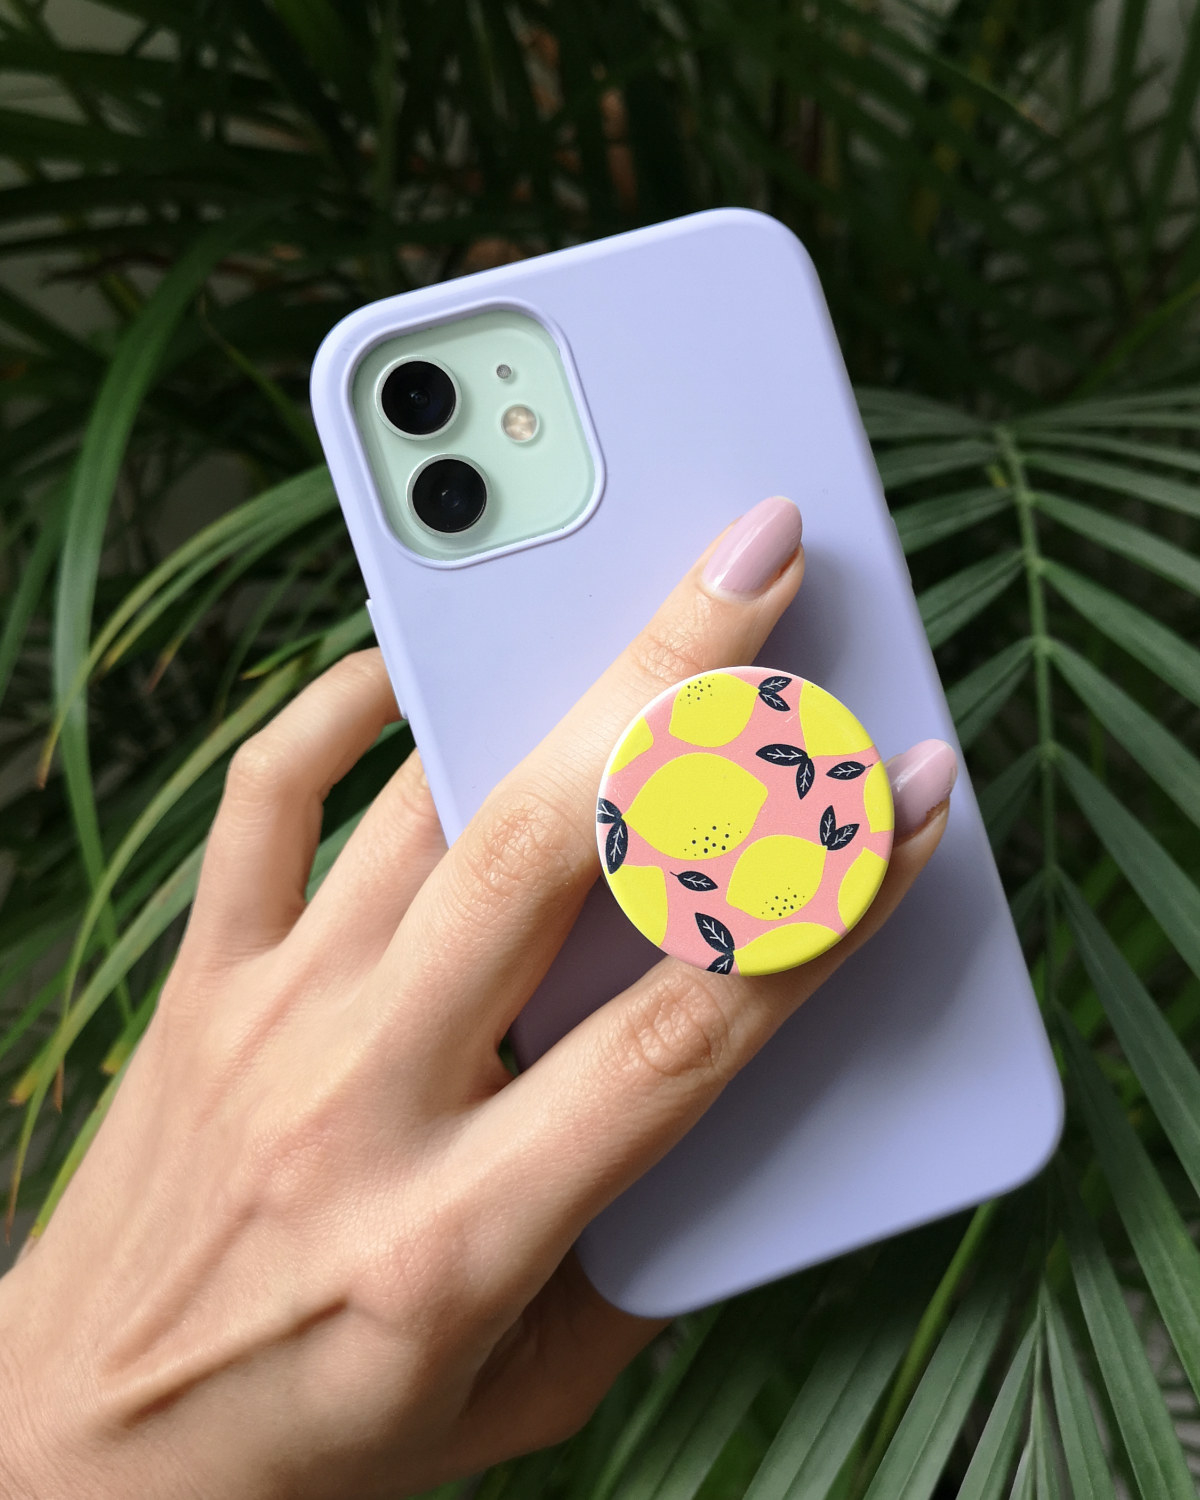 Brittany holding her iPhone 12 with the lemon-patterned popsocket